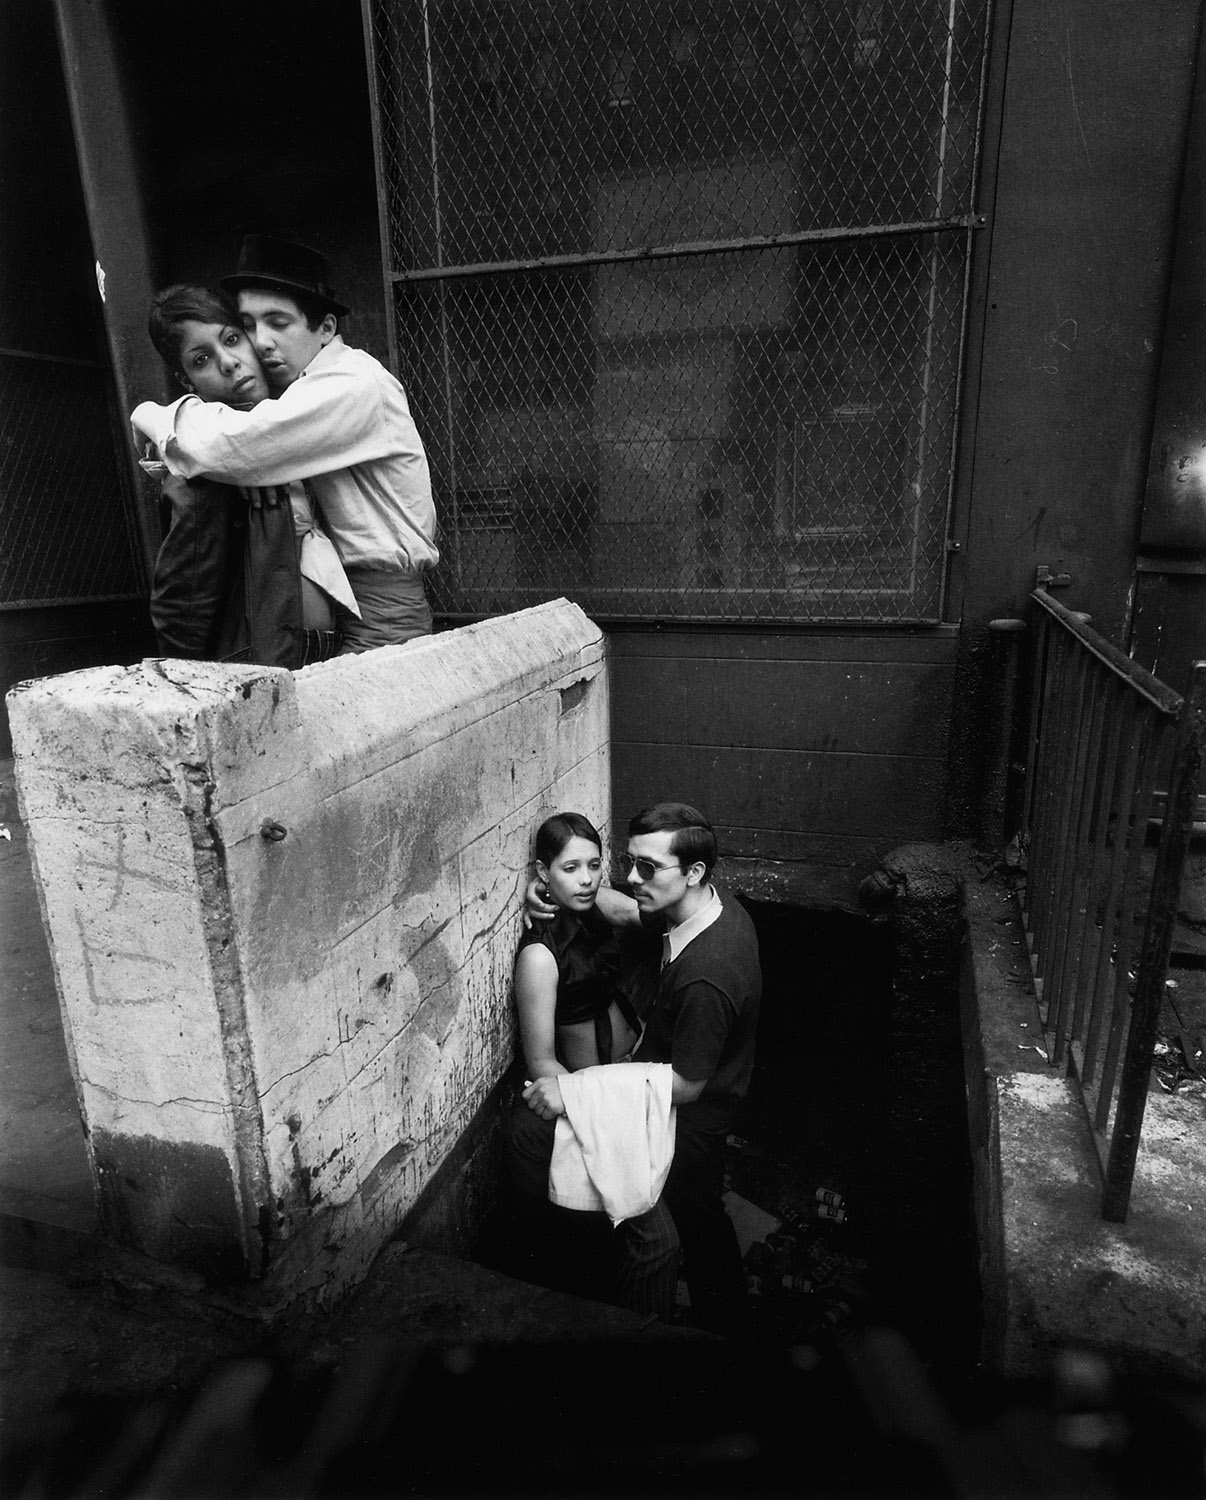 Bruce Davidson   Untitled, East 100th Street,  1966-1968 14 x 11 inches  Silver Gelatin Print